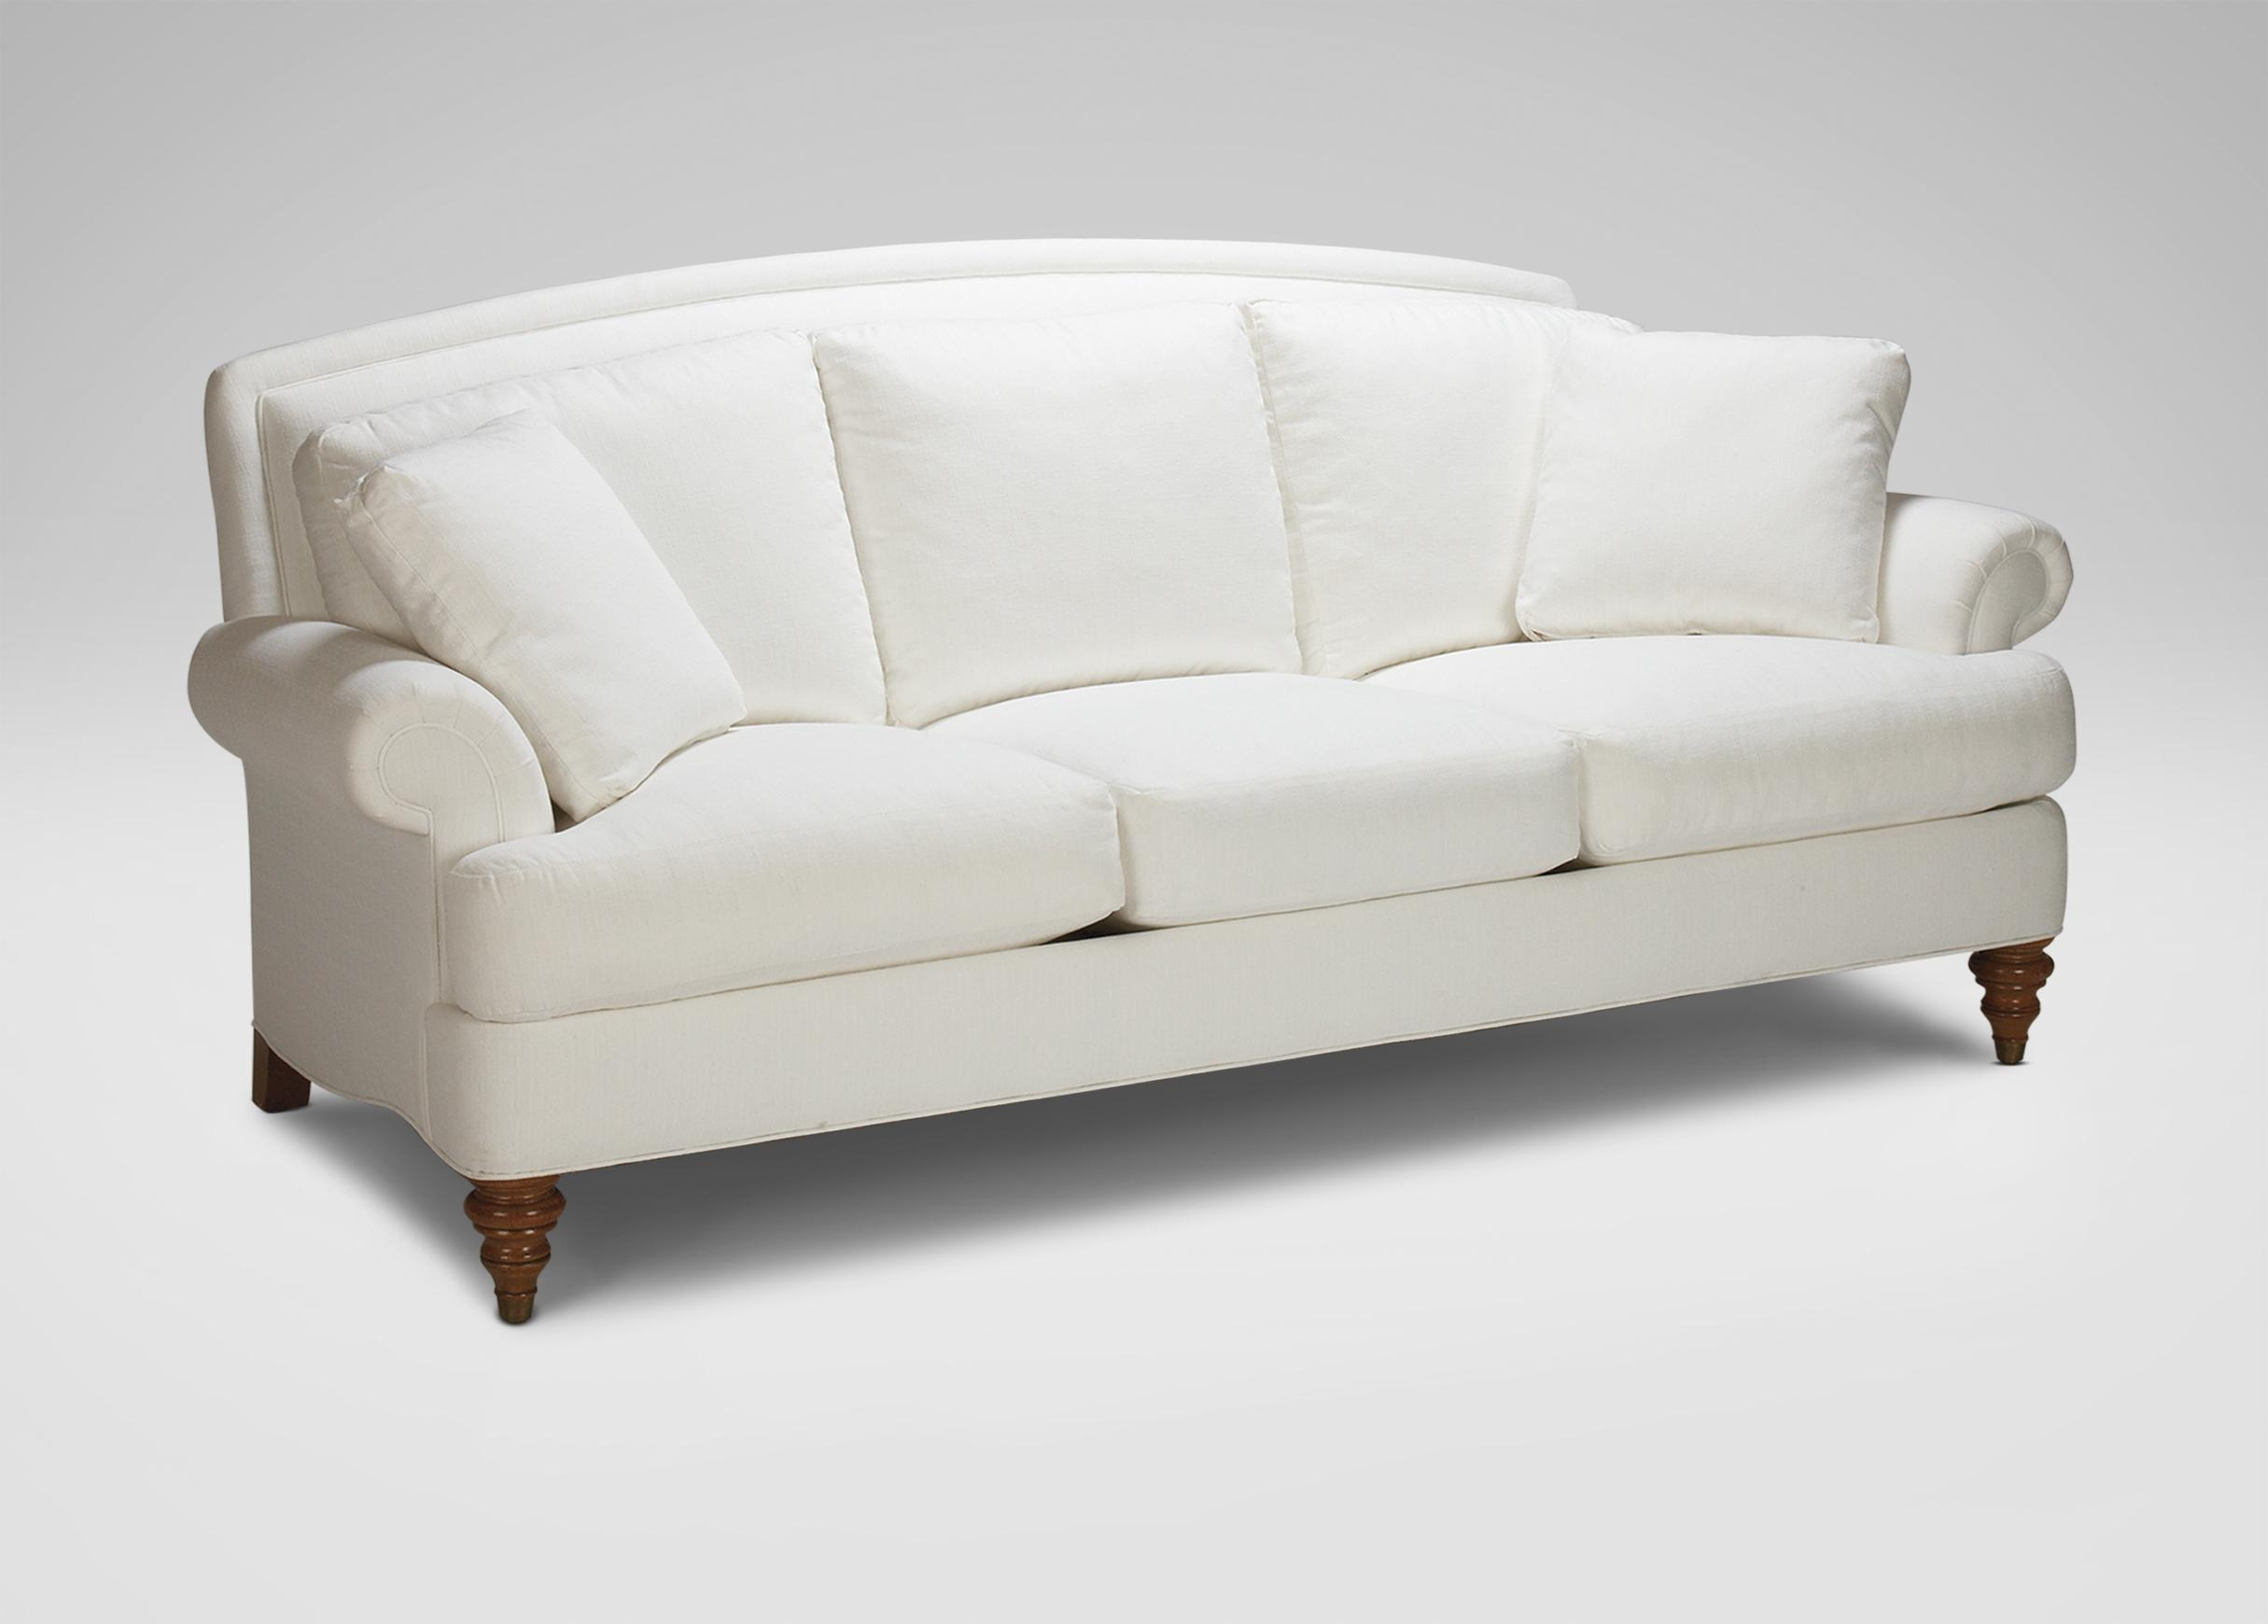 Hyde Three Cushion Sofa | Sofas & Loveseats Inside Ethan Allen Sofas And Chairs (Image 12 of 20)